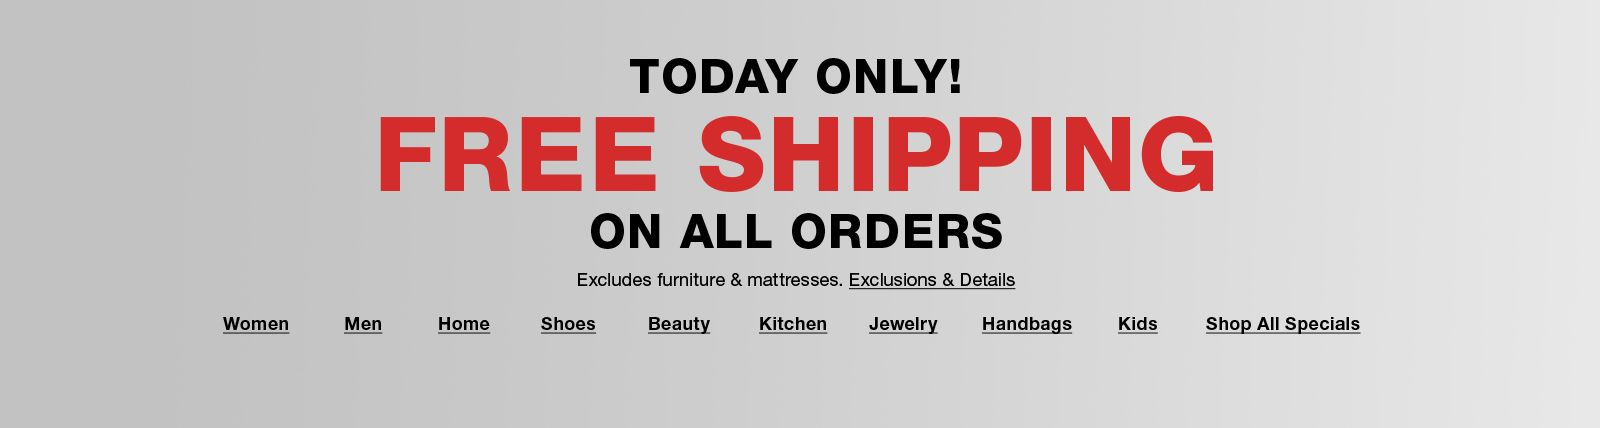 Today Only Free Shipping on all Orders , Exclusions and Details, Women, Men, Home, Shoes, Beauty, Kitchen, Jewelry, Handbags, Kids, Shop All Specials